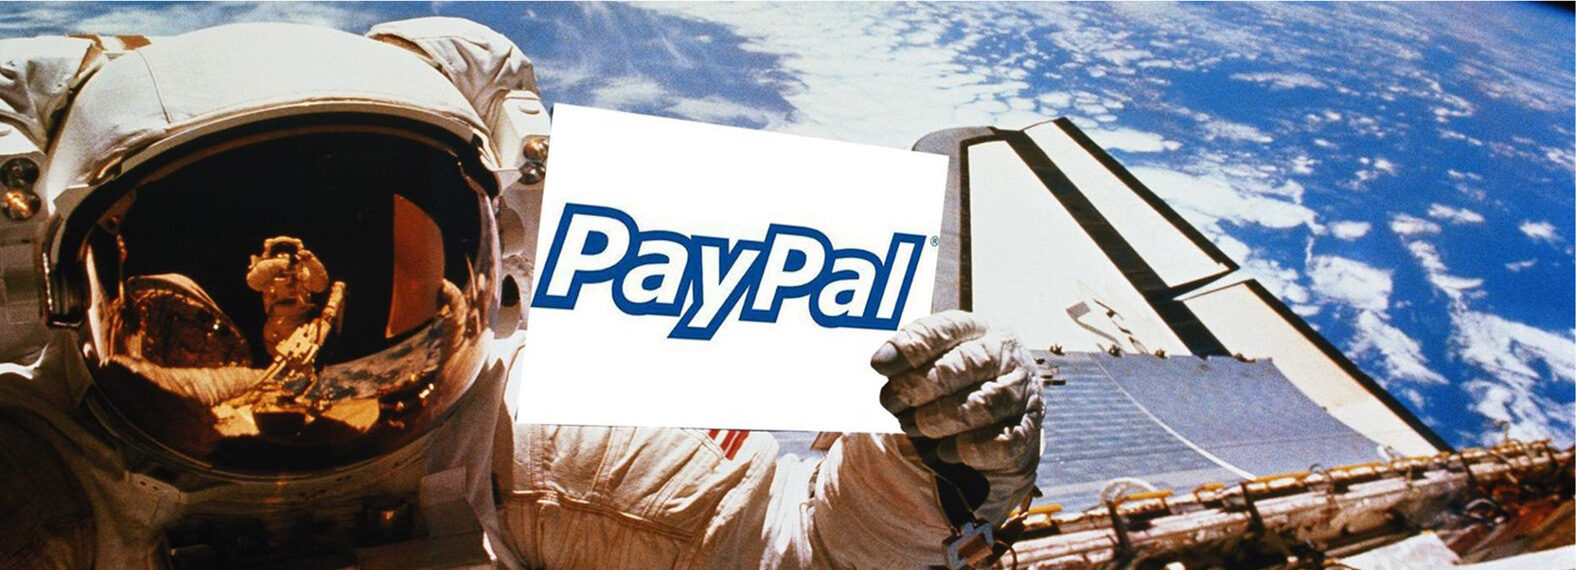 PayPal: Most successful launch campaign. Ever.